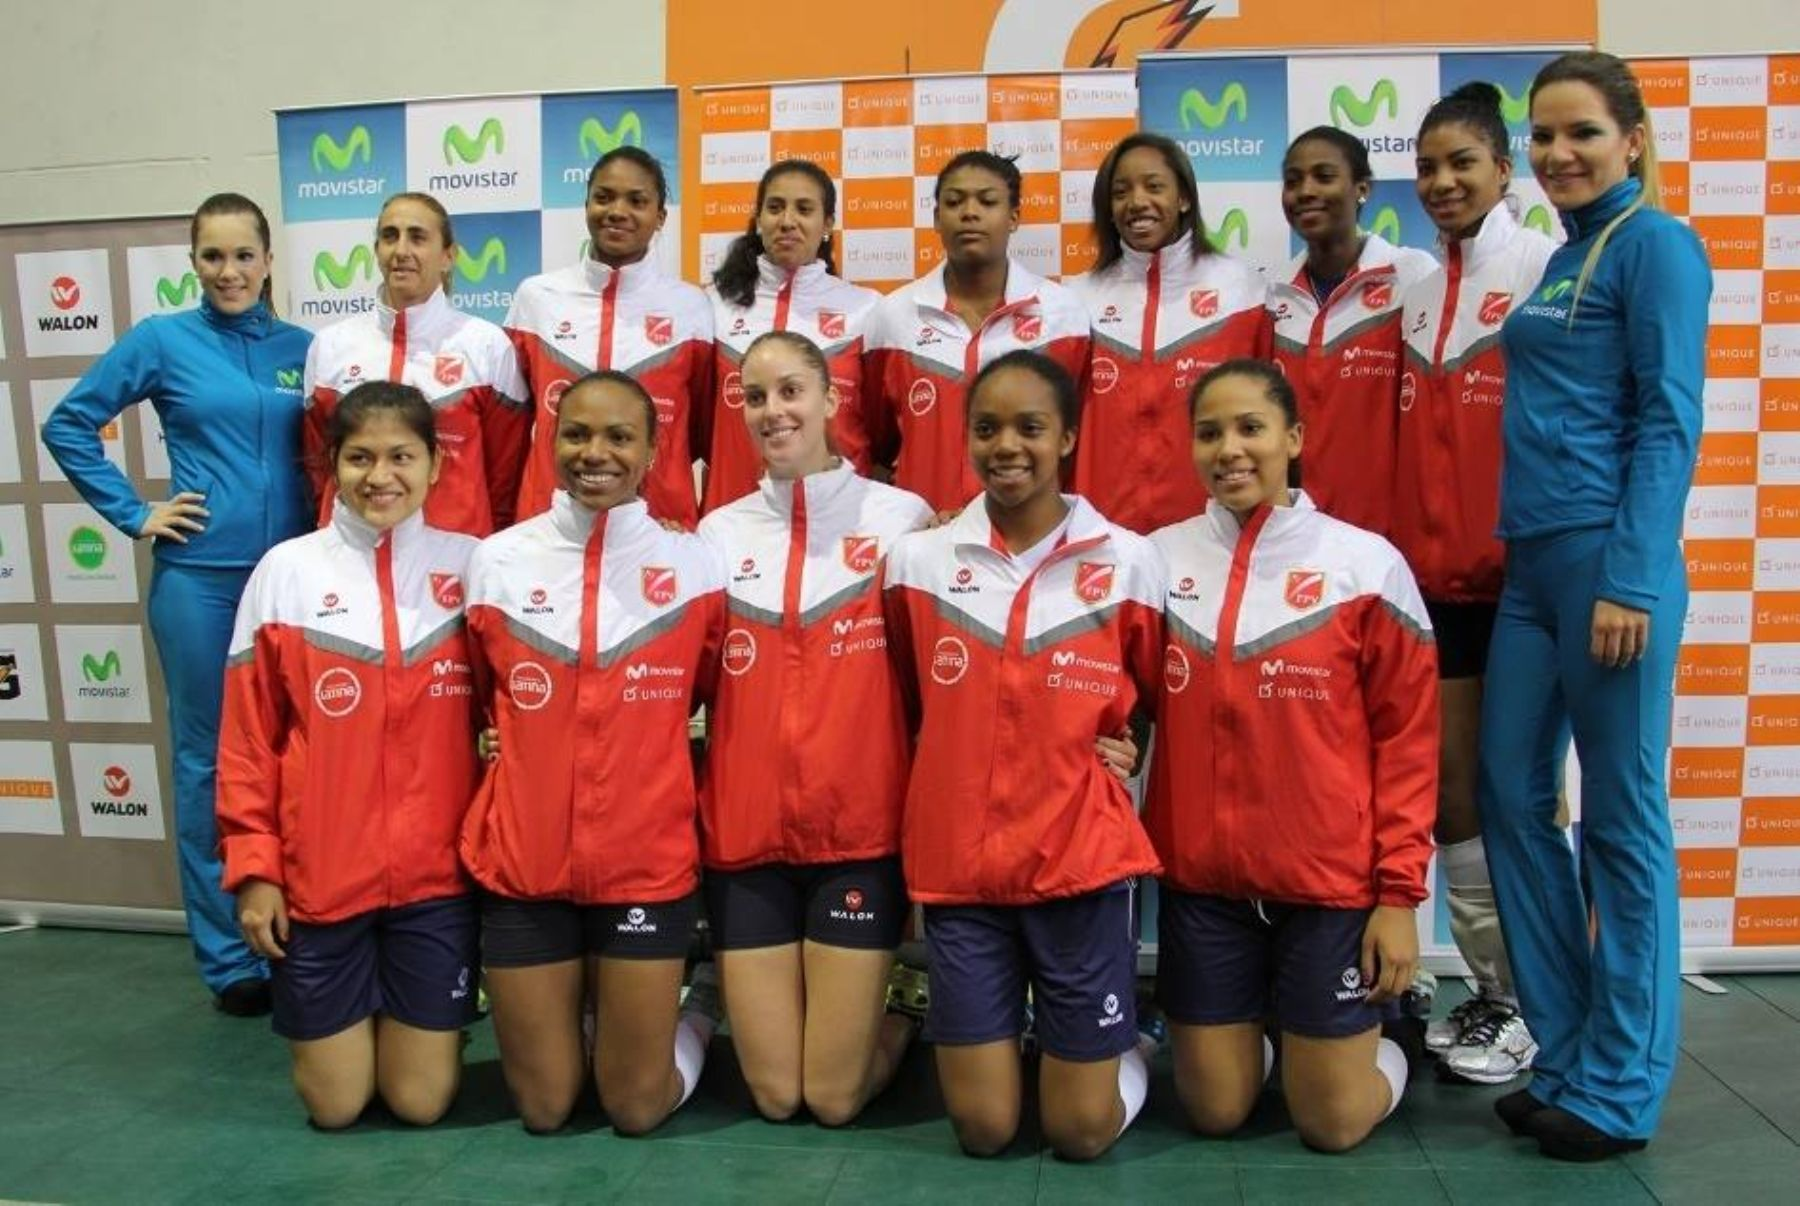 Peru Volleyball Team Ready To Face Canada At Pan Am Cup News Andina Peru News Agency